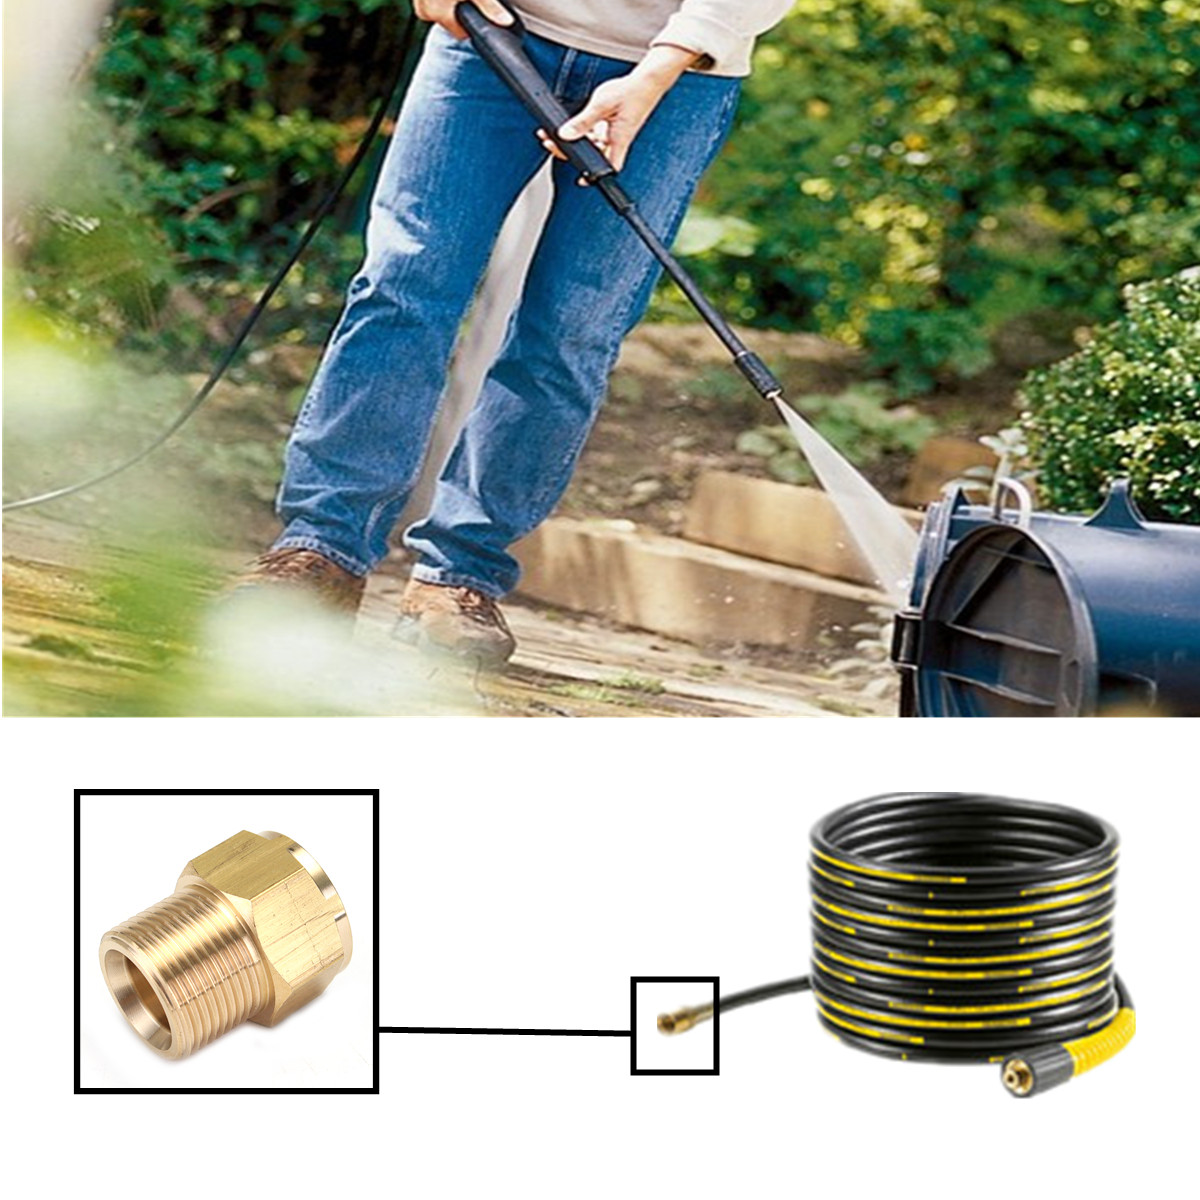 M22 Brass Pressure Washer Adapter Male to Female Outlet Hose Coulper Fitting